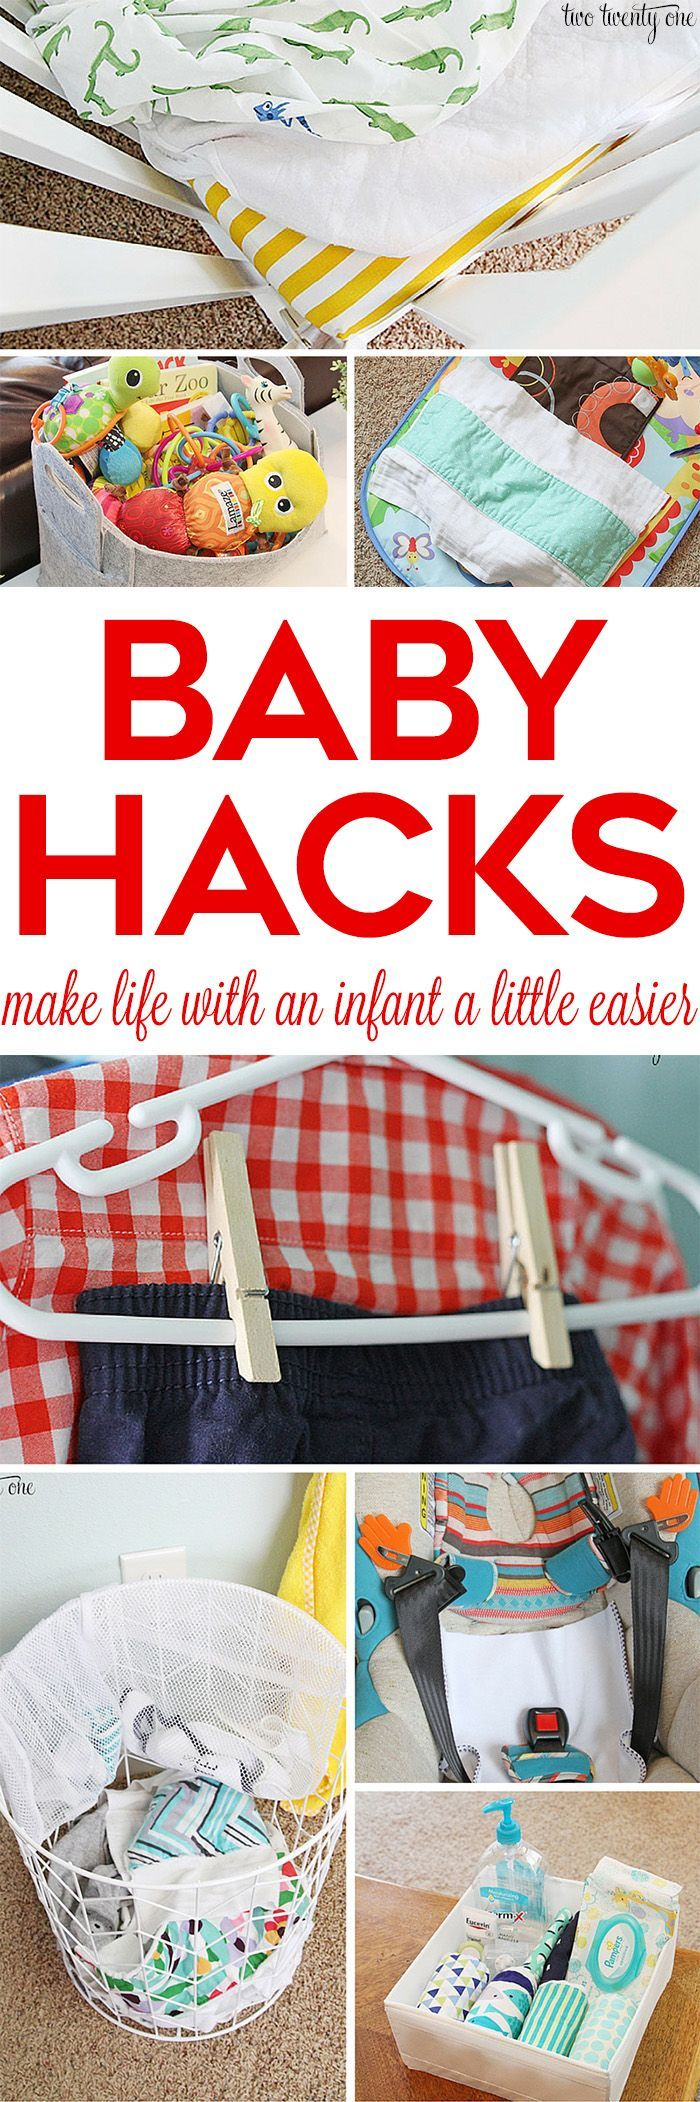 Top tips for making a baby s nursery special - Baby Hacks